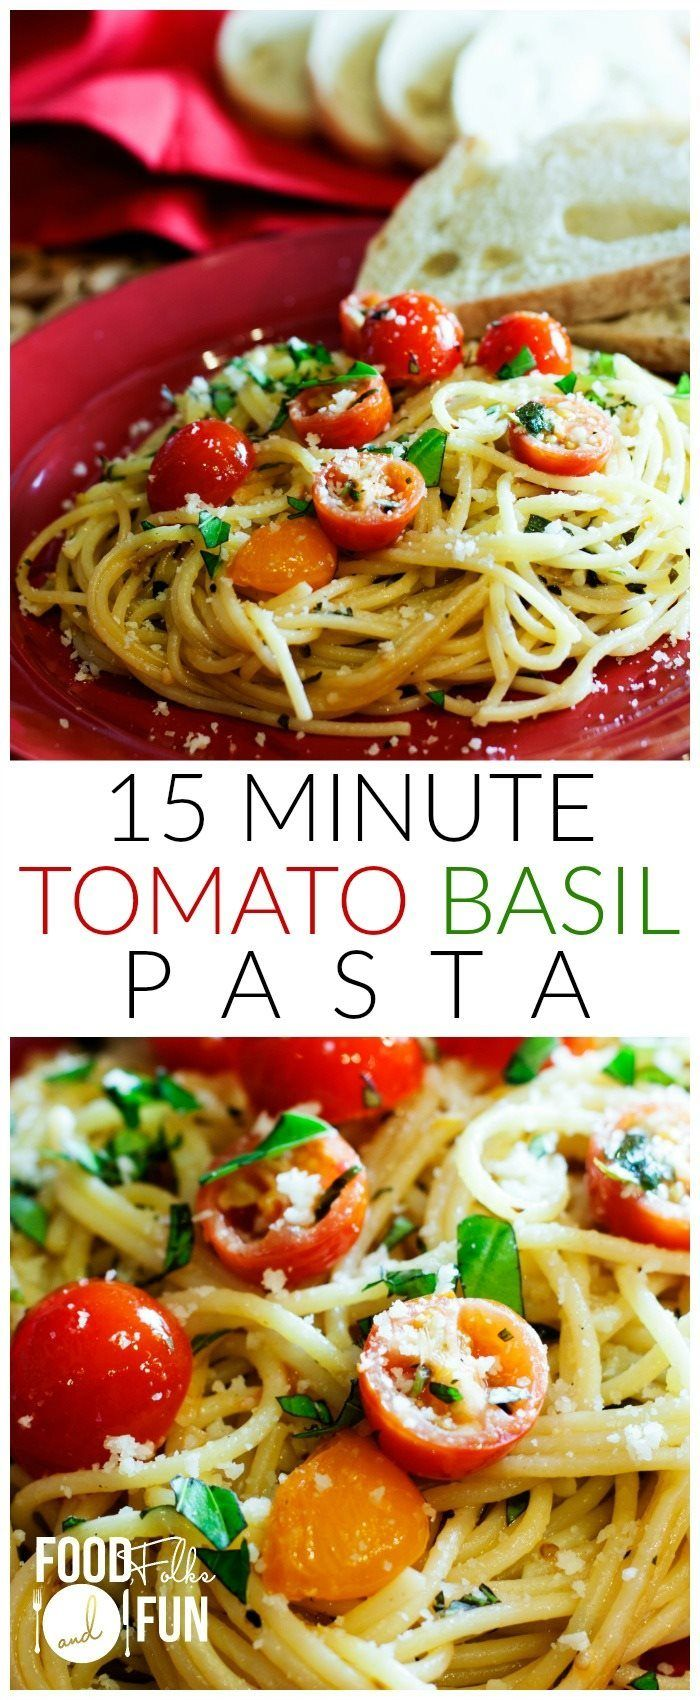 This Tomato Basil Pasta is great for busy weeknights. Once the pasta is cooked, dinner is DONE! 15 minutes is all that you need!